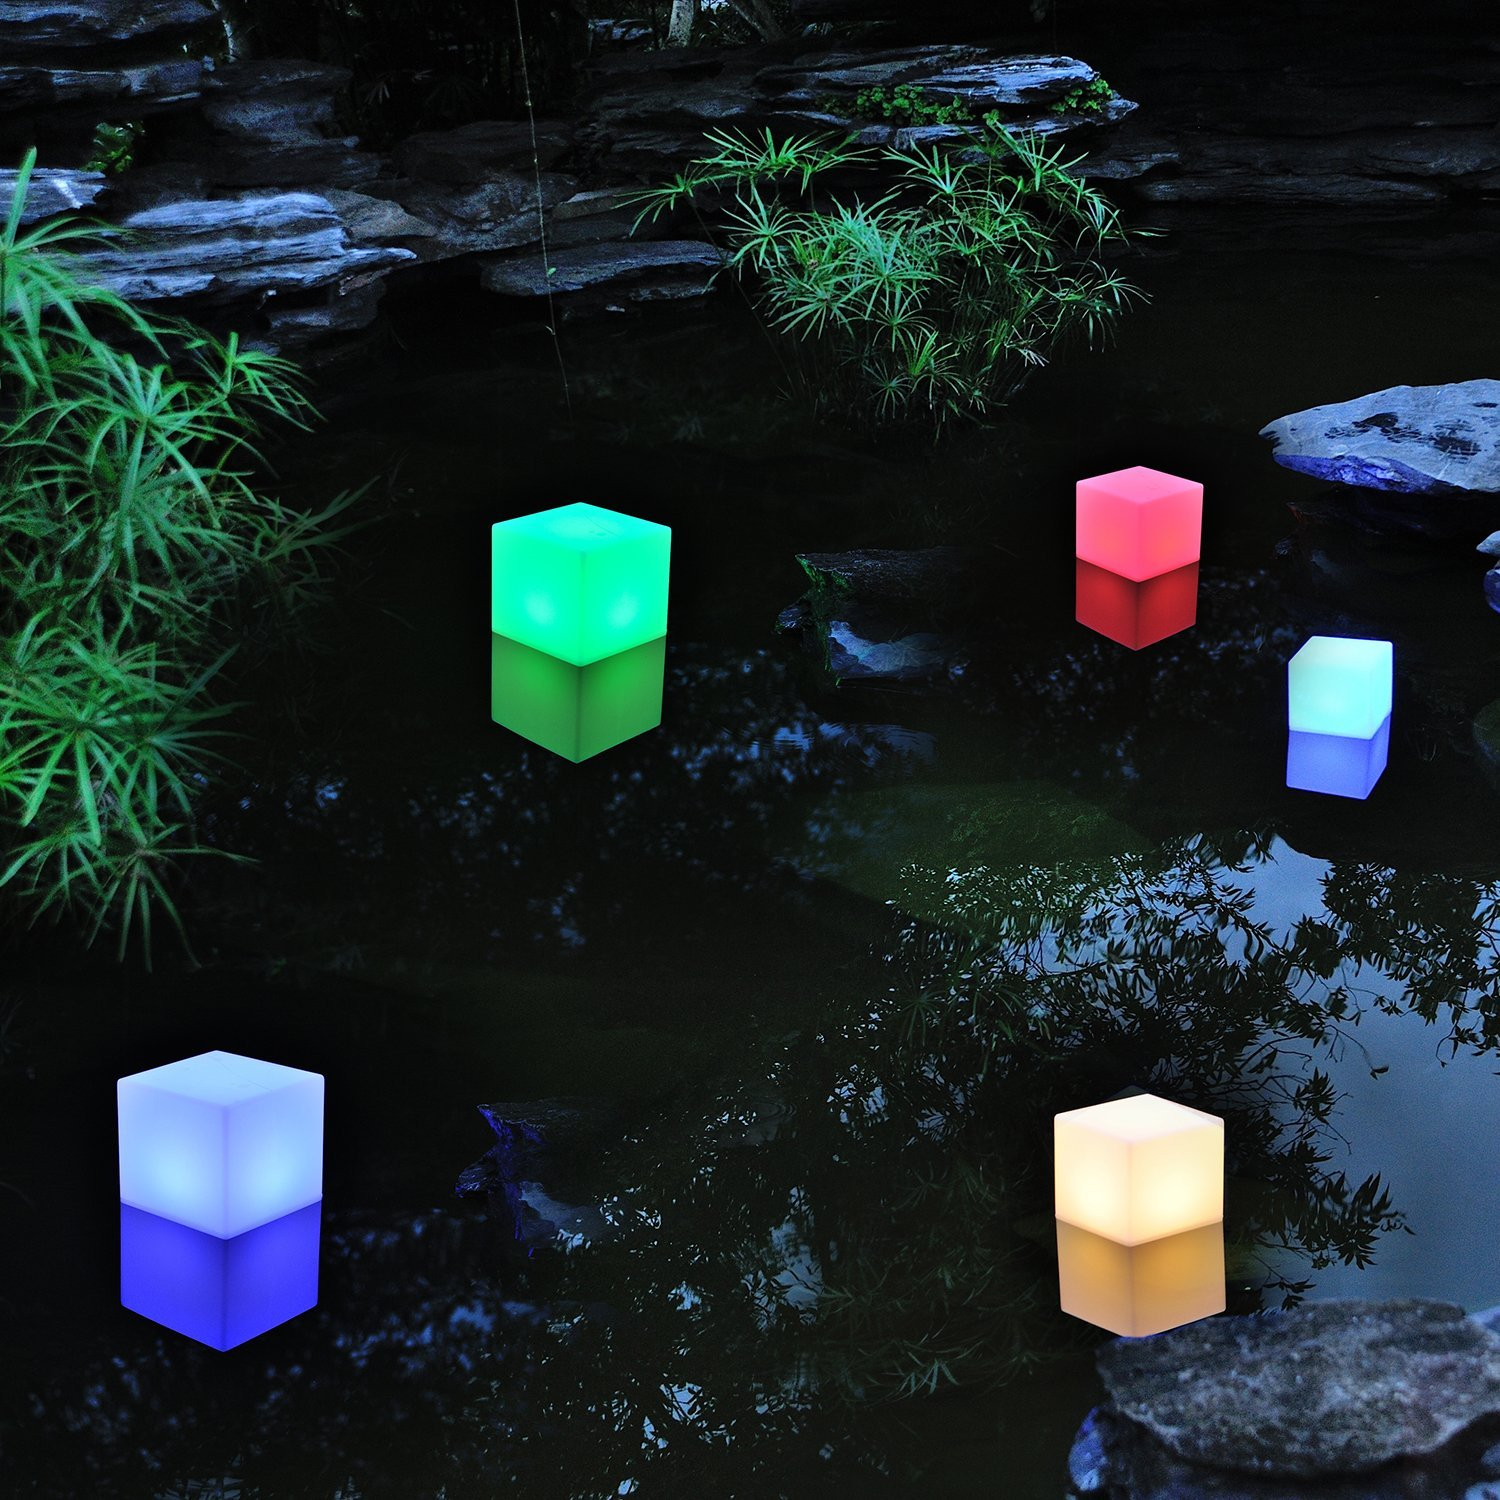 Floating pool lights on pinterest solar pool lights backyard pool - Amazon Com Aoske 8 Inch Floating Led Pool Glow Light Cube Outdoor Living Garden Light Decor Waterproof Color Changing Cube Patio Lawn Garden